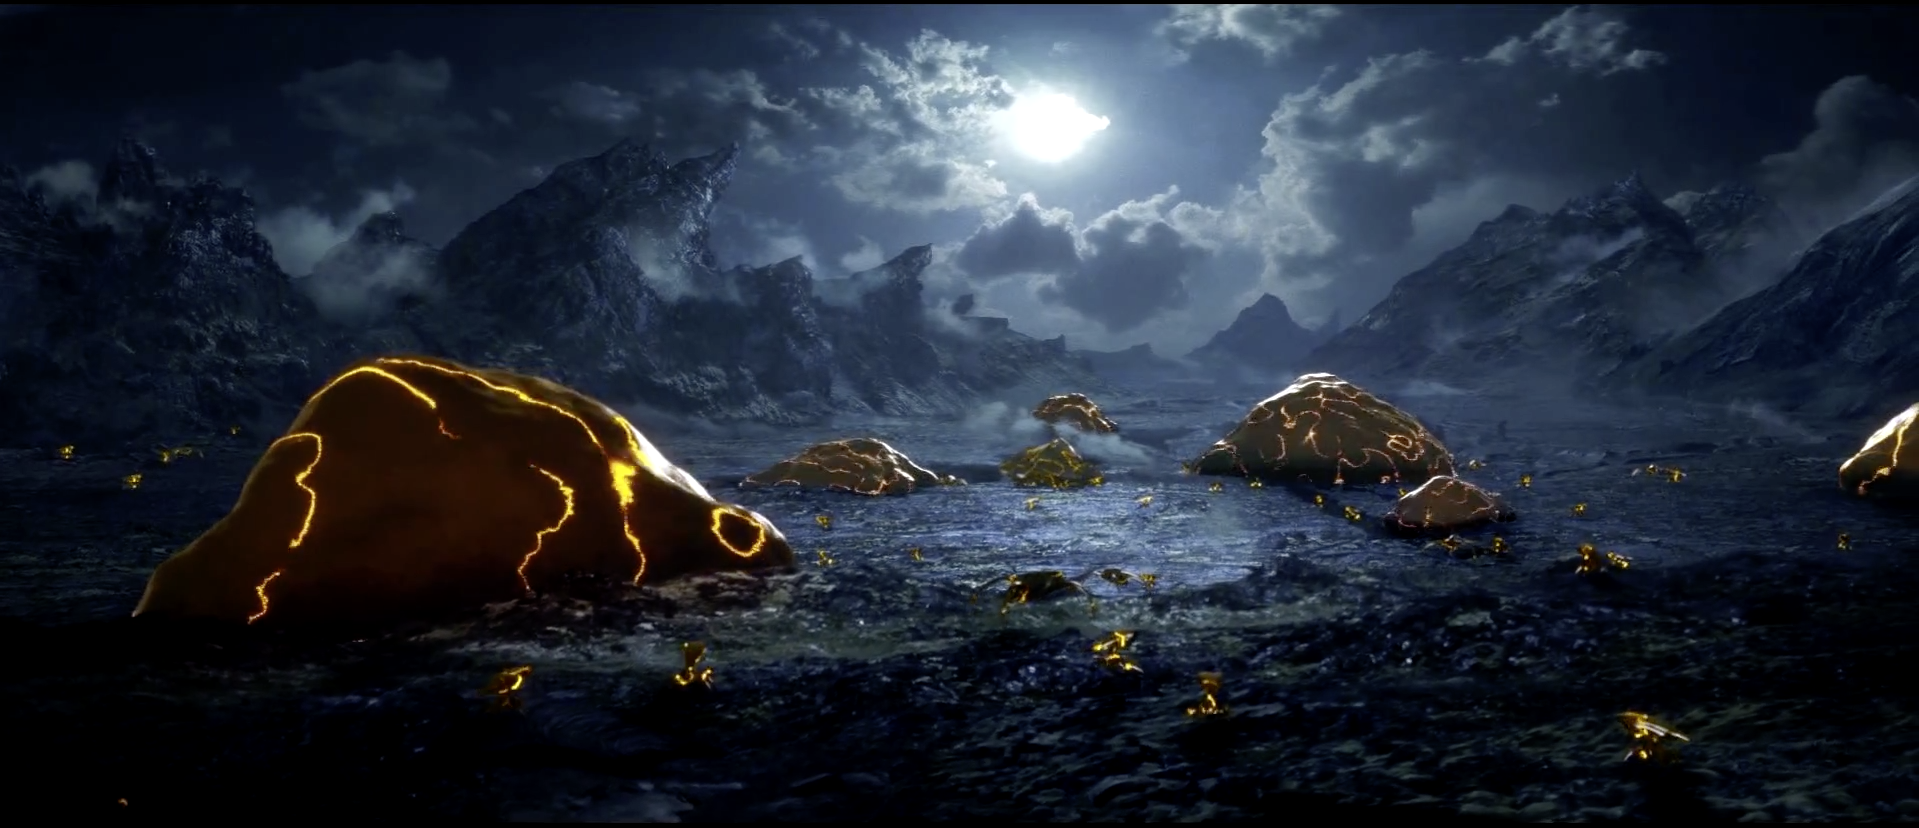 Could not find a clip of this scene. Matte painting by Igor Staritsin and Rahul K Venguopal.